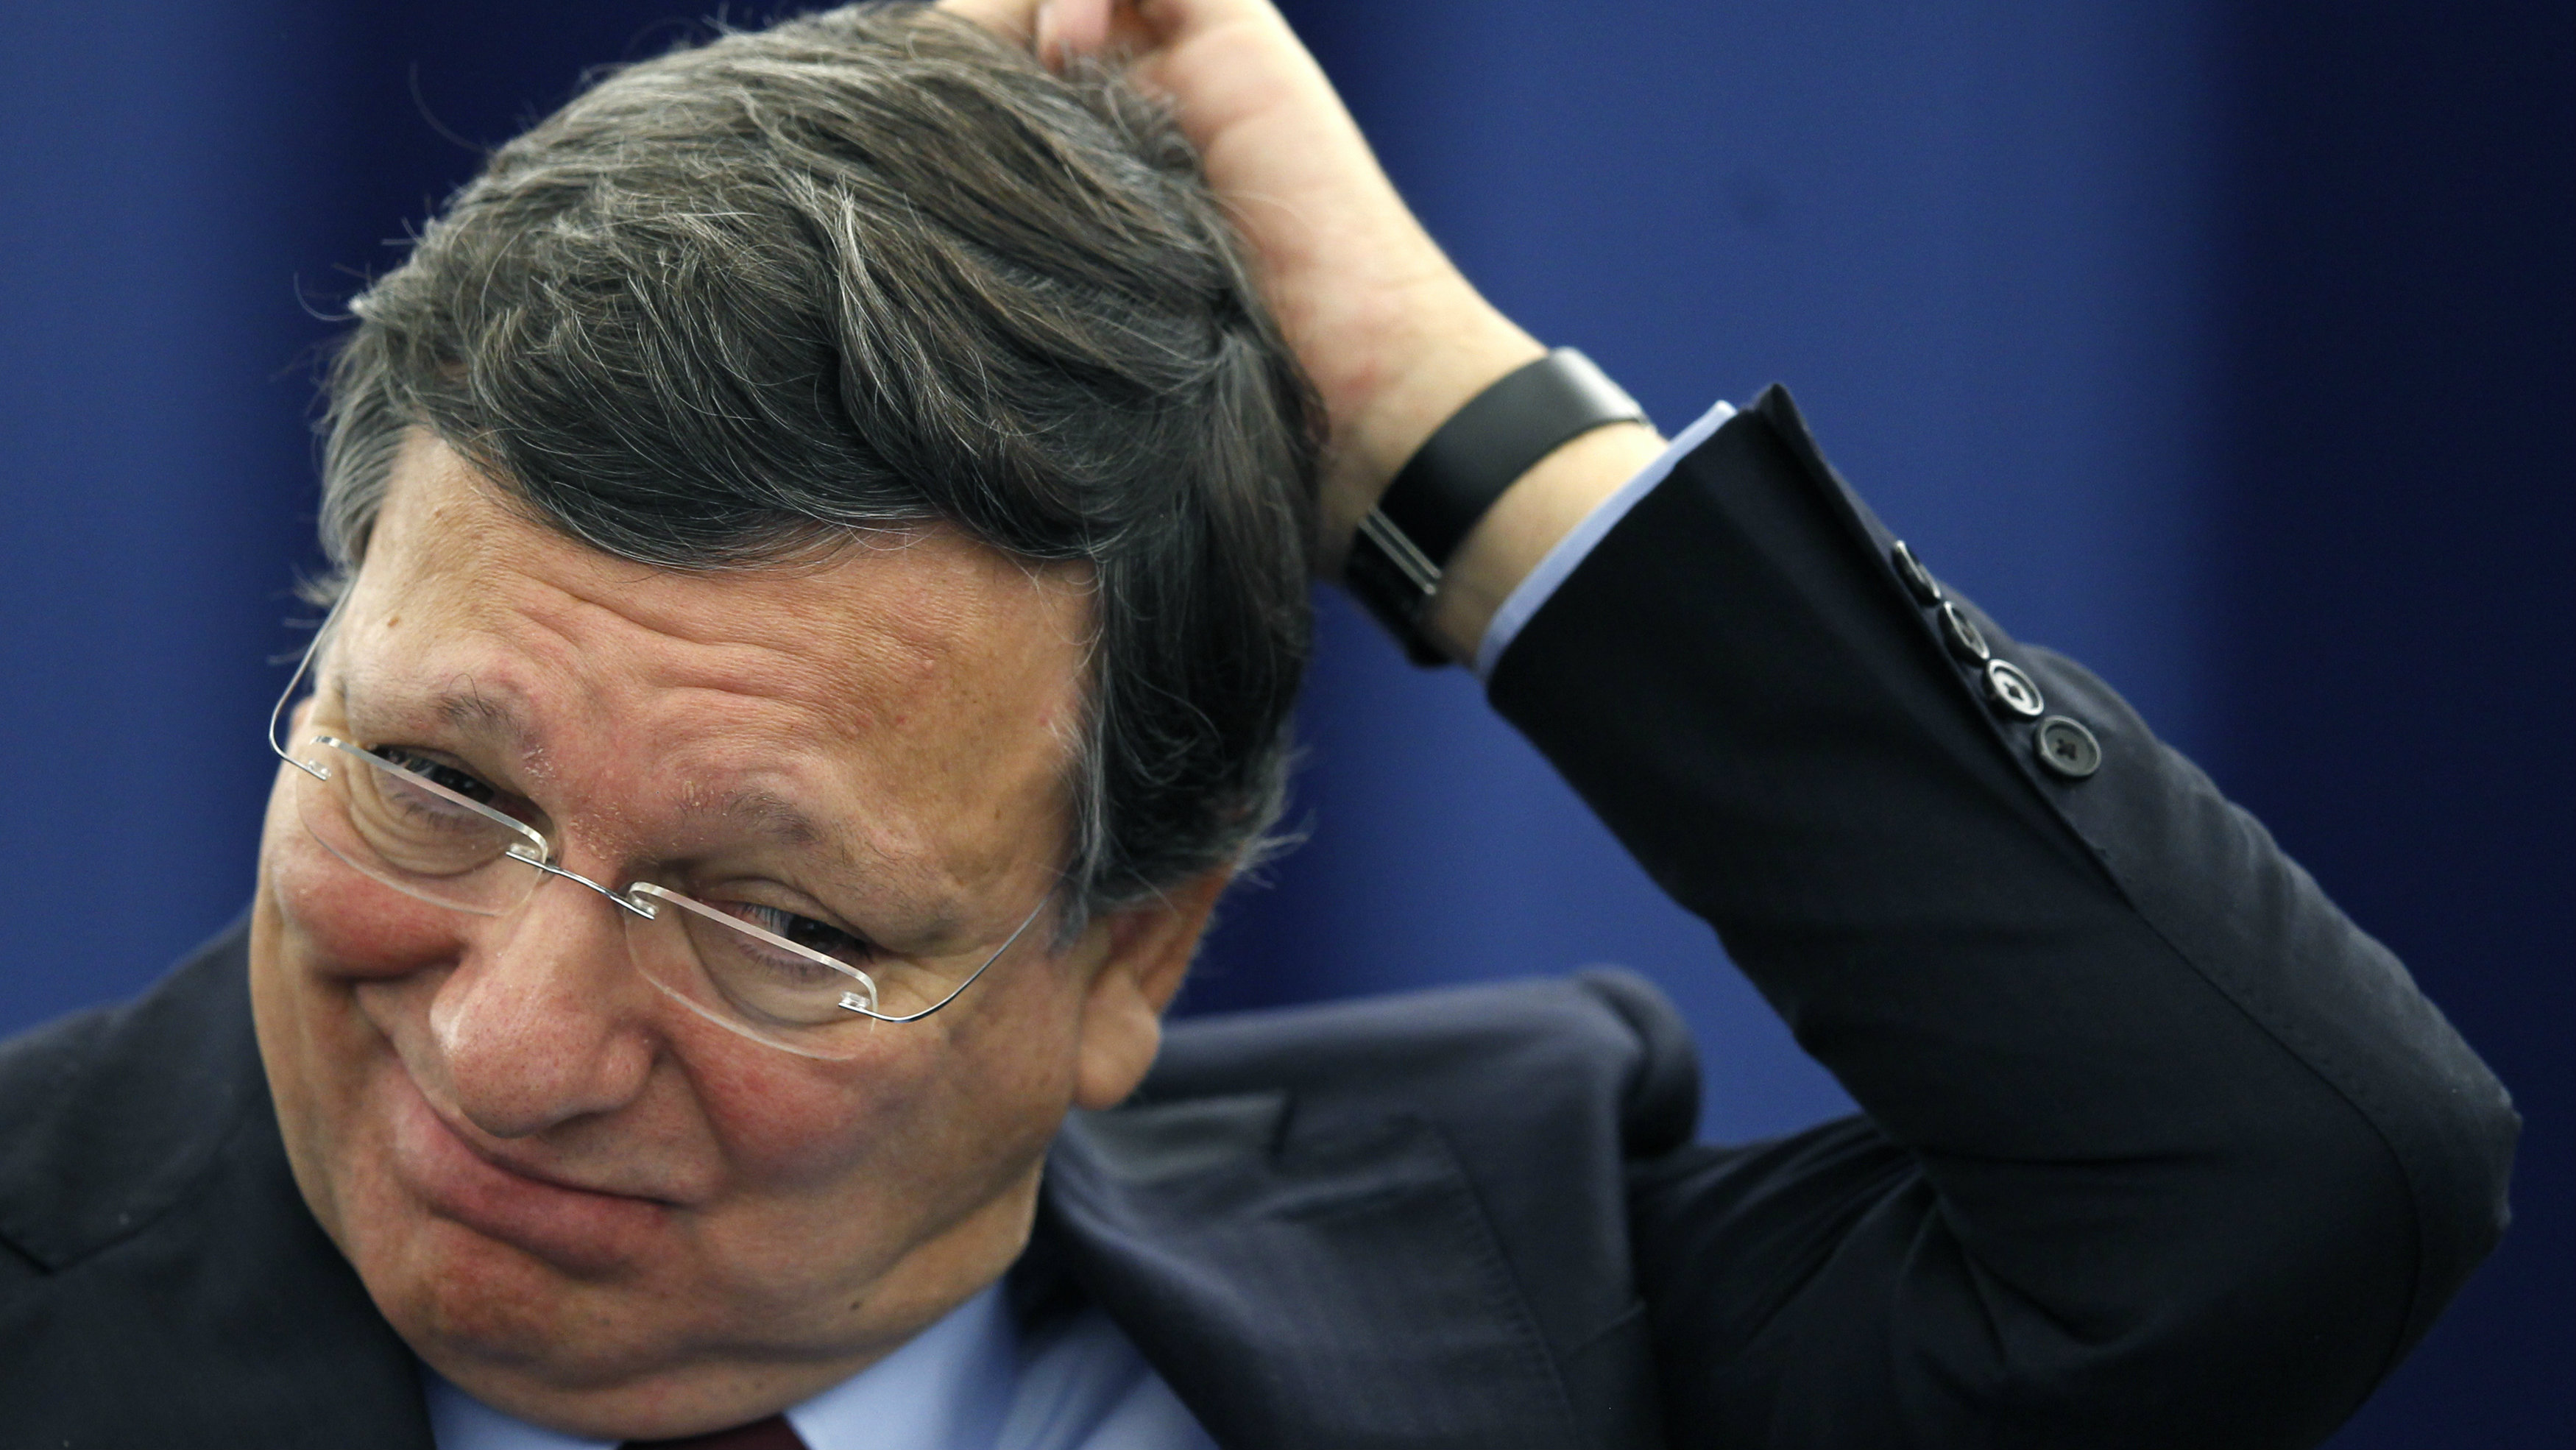 European Commission President Jose Manuel Barroso scratches his head during a debate on the last EU summit in Strasbourg, October 23, 2012. REUTERS/Vincent Kessler (FRANCE - Tags: POLITICS BUSINESS TPX IMAGES OF THE DAY)